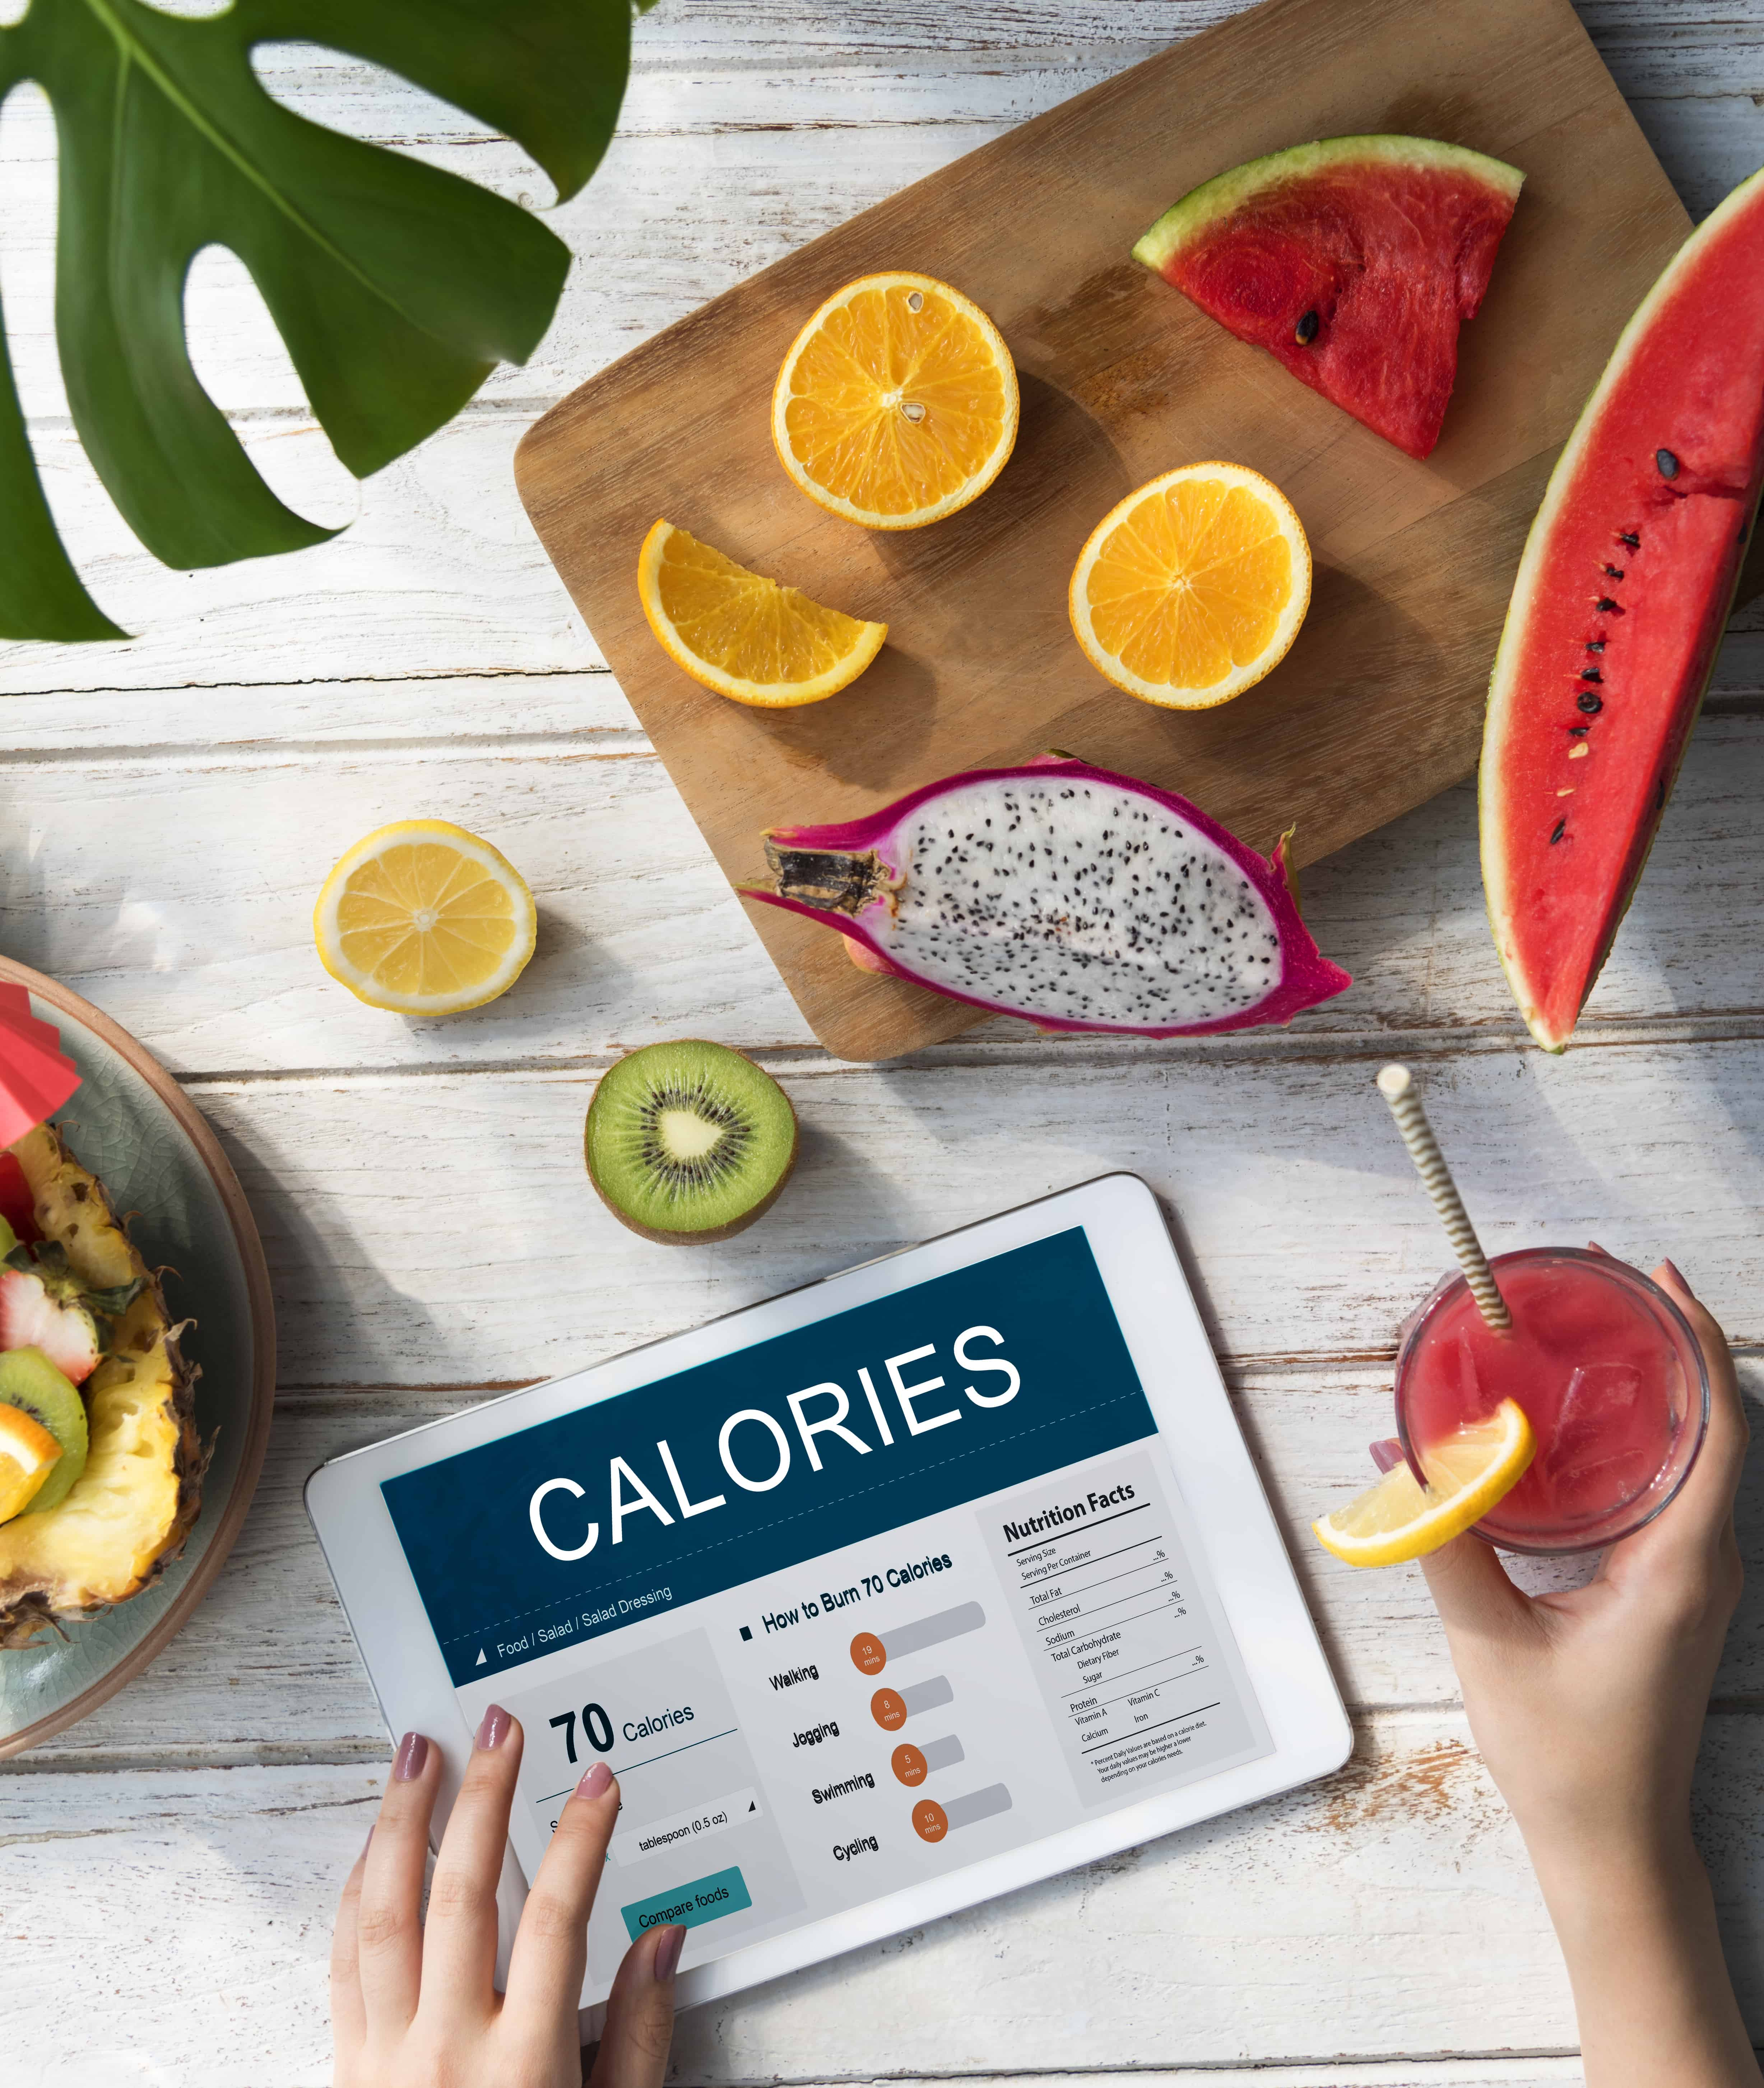 Calorie Counting Or Intuitive Eating